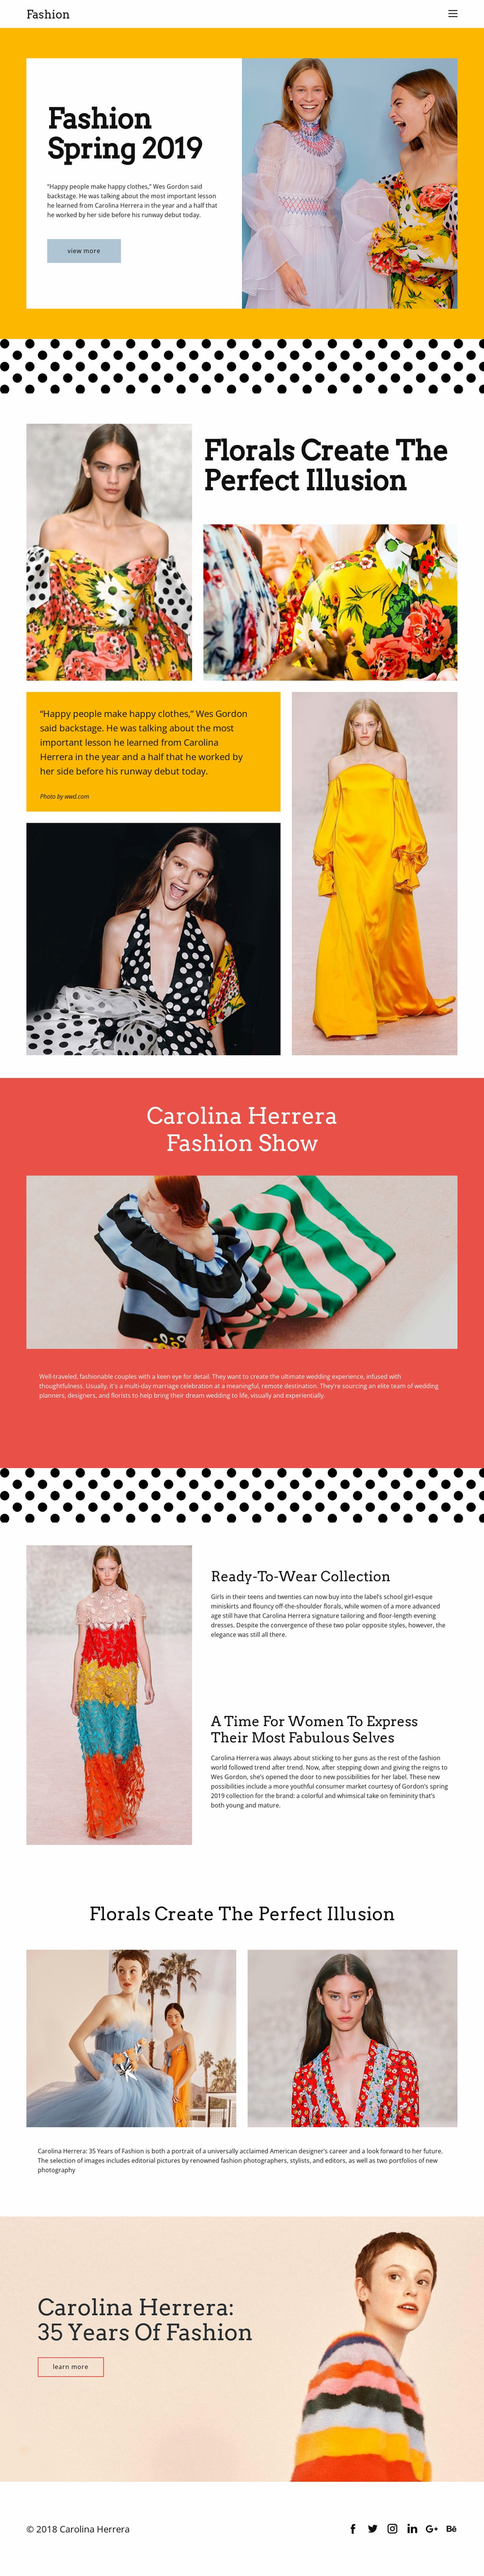 Fashion Spring Website Template